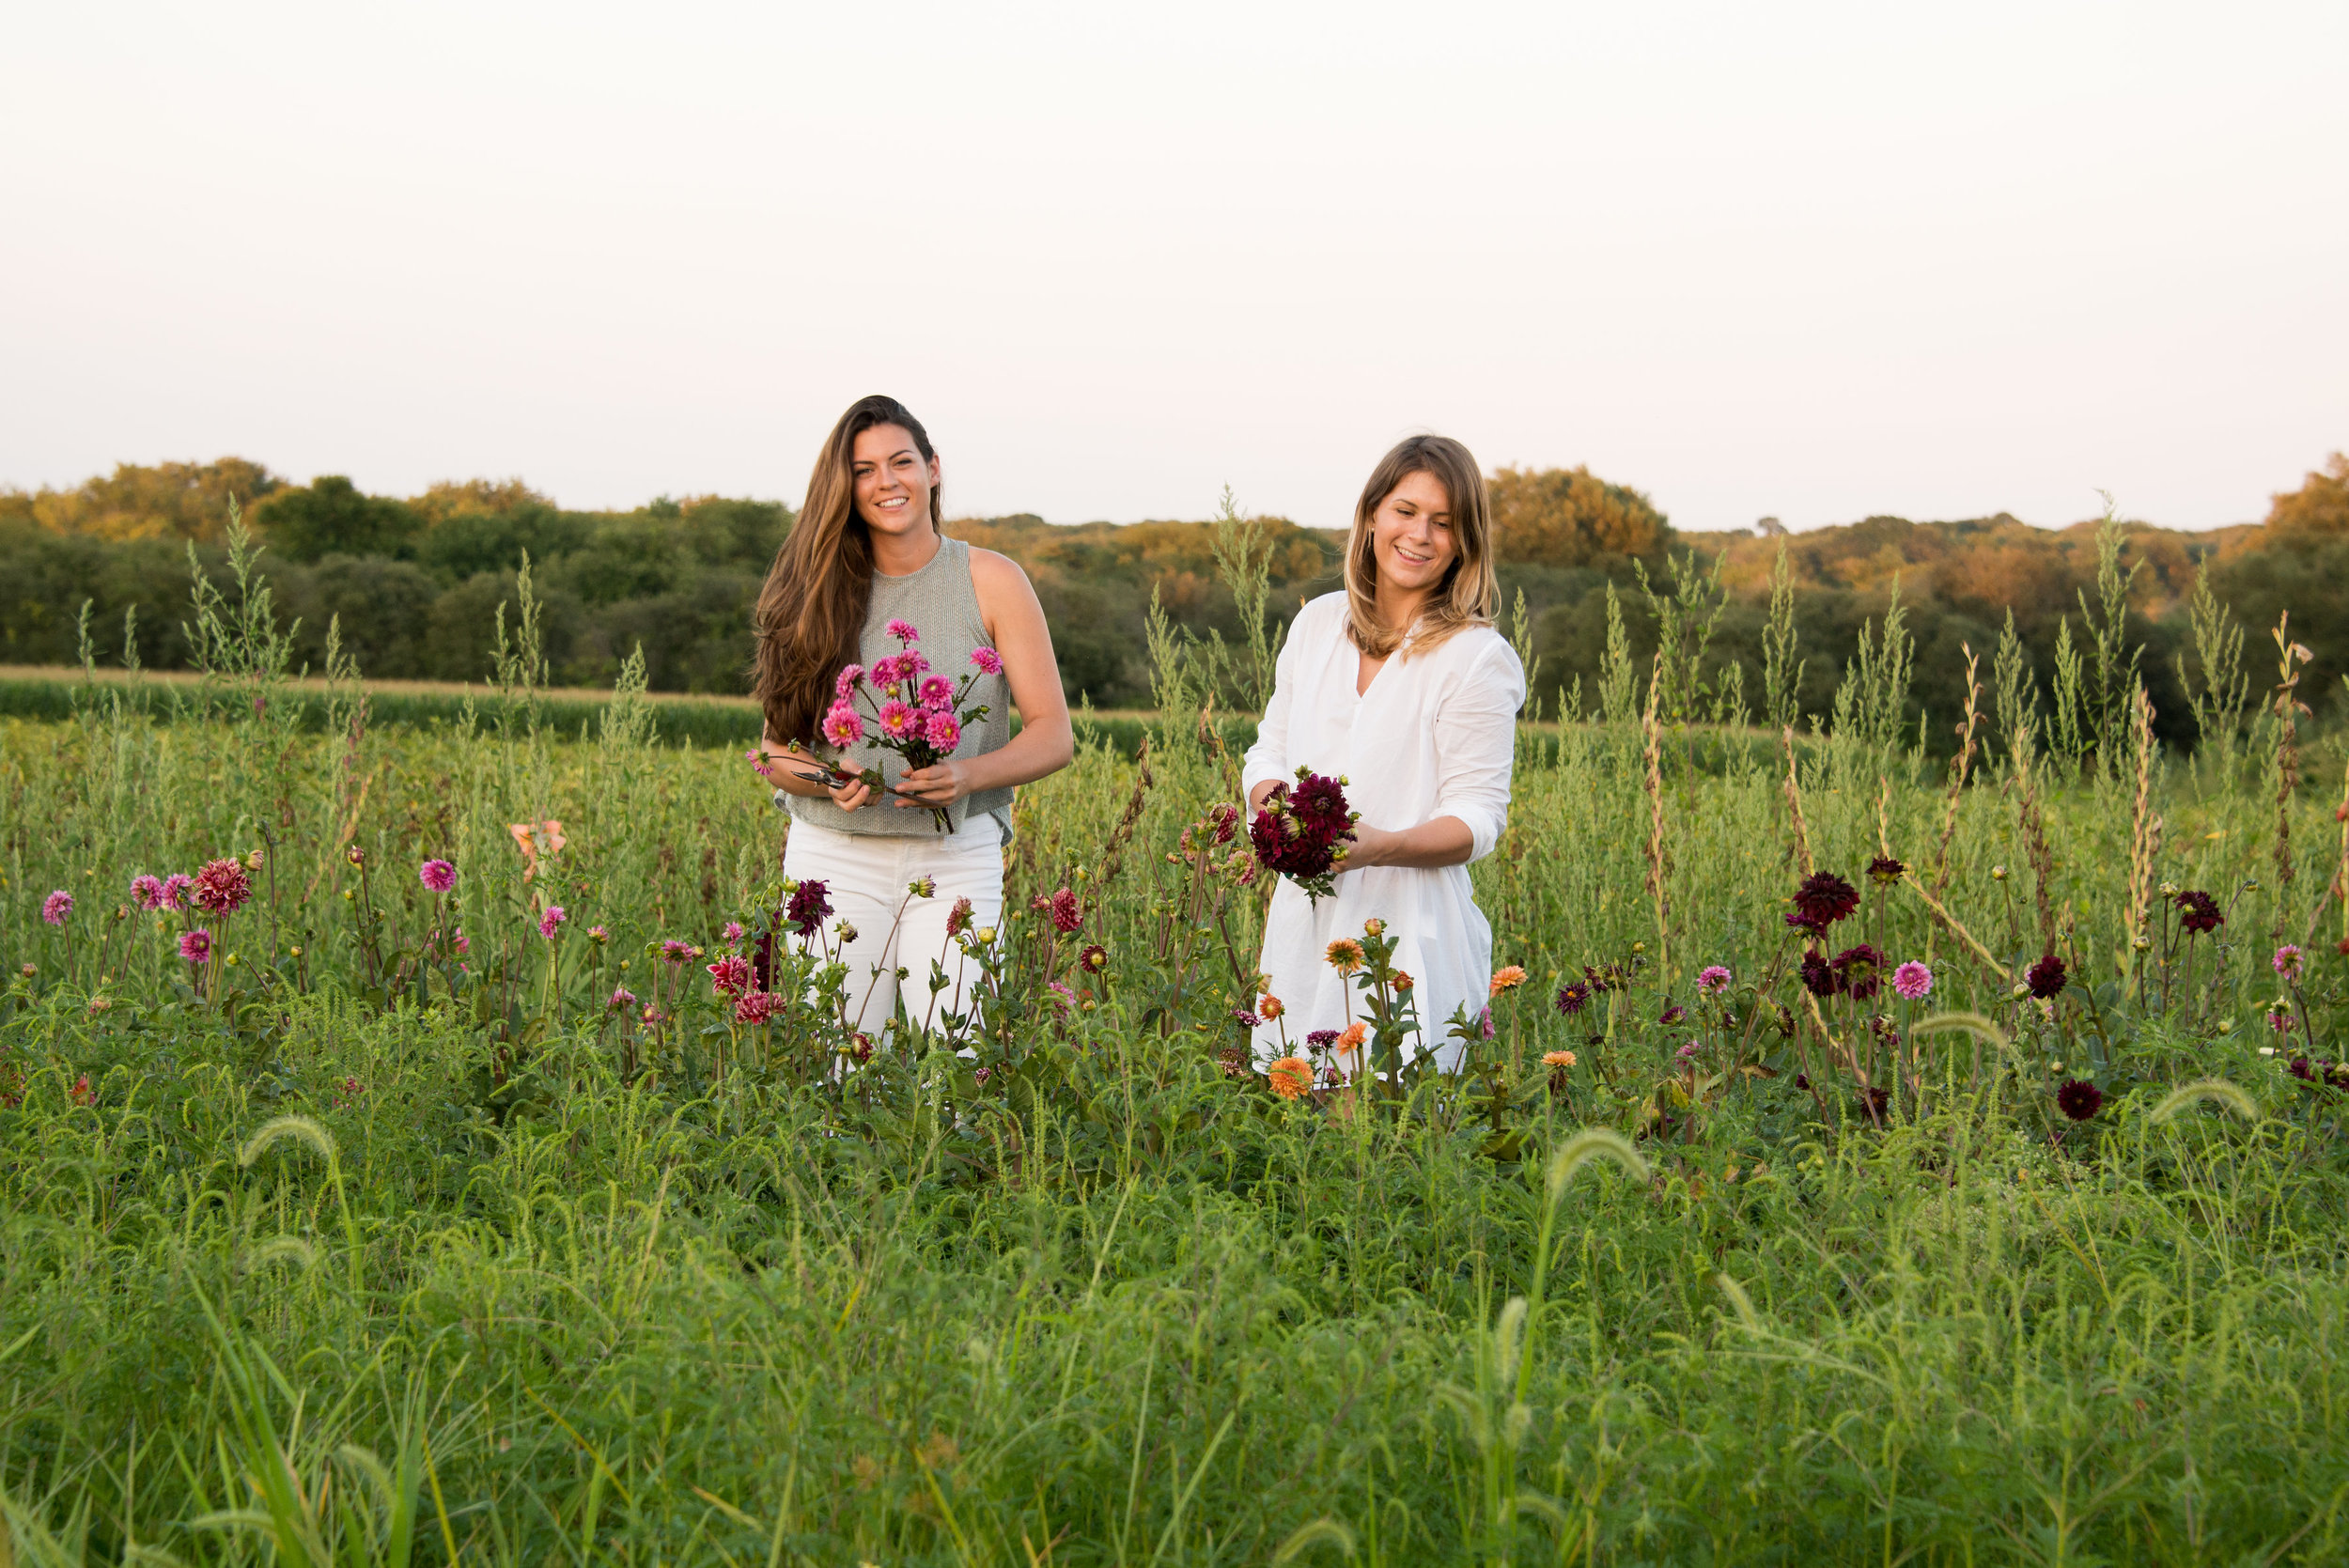 Our Story - Hattie and Sarah grew up on a farm in Little Compton, Rhode Island. Their summers consisted of working for their parents...